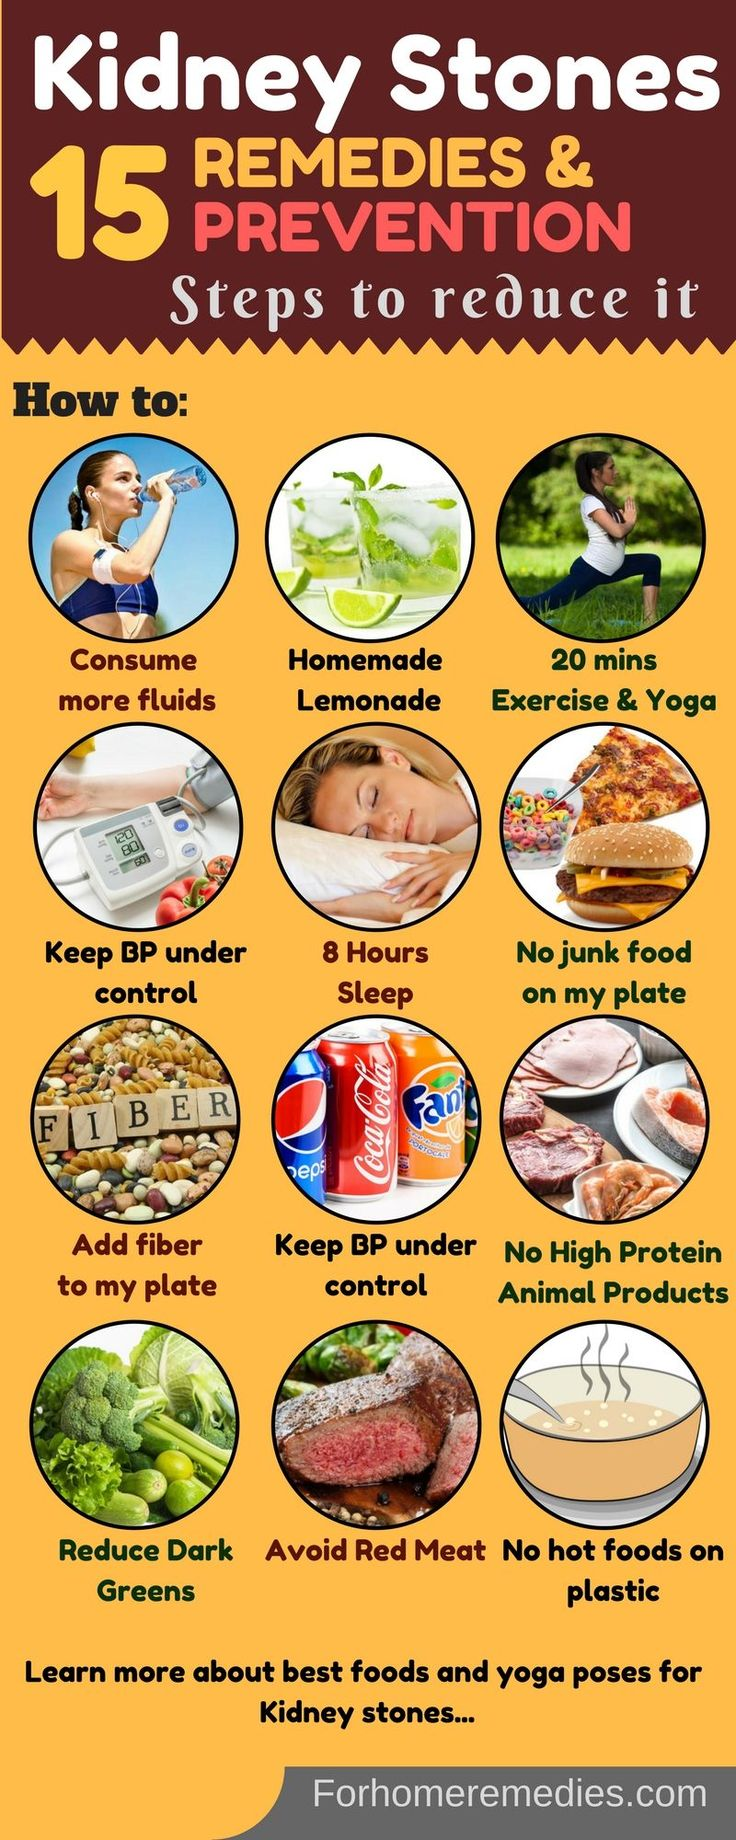 Home Remedies and Best foods for kidney stones: Diet plan, Exercises, Yoga poses, 5 Easy home remedies. Foods to avoid for kidney stones. How to prevent kidney stones.